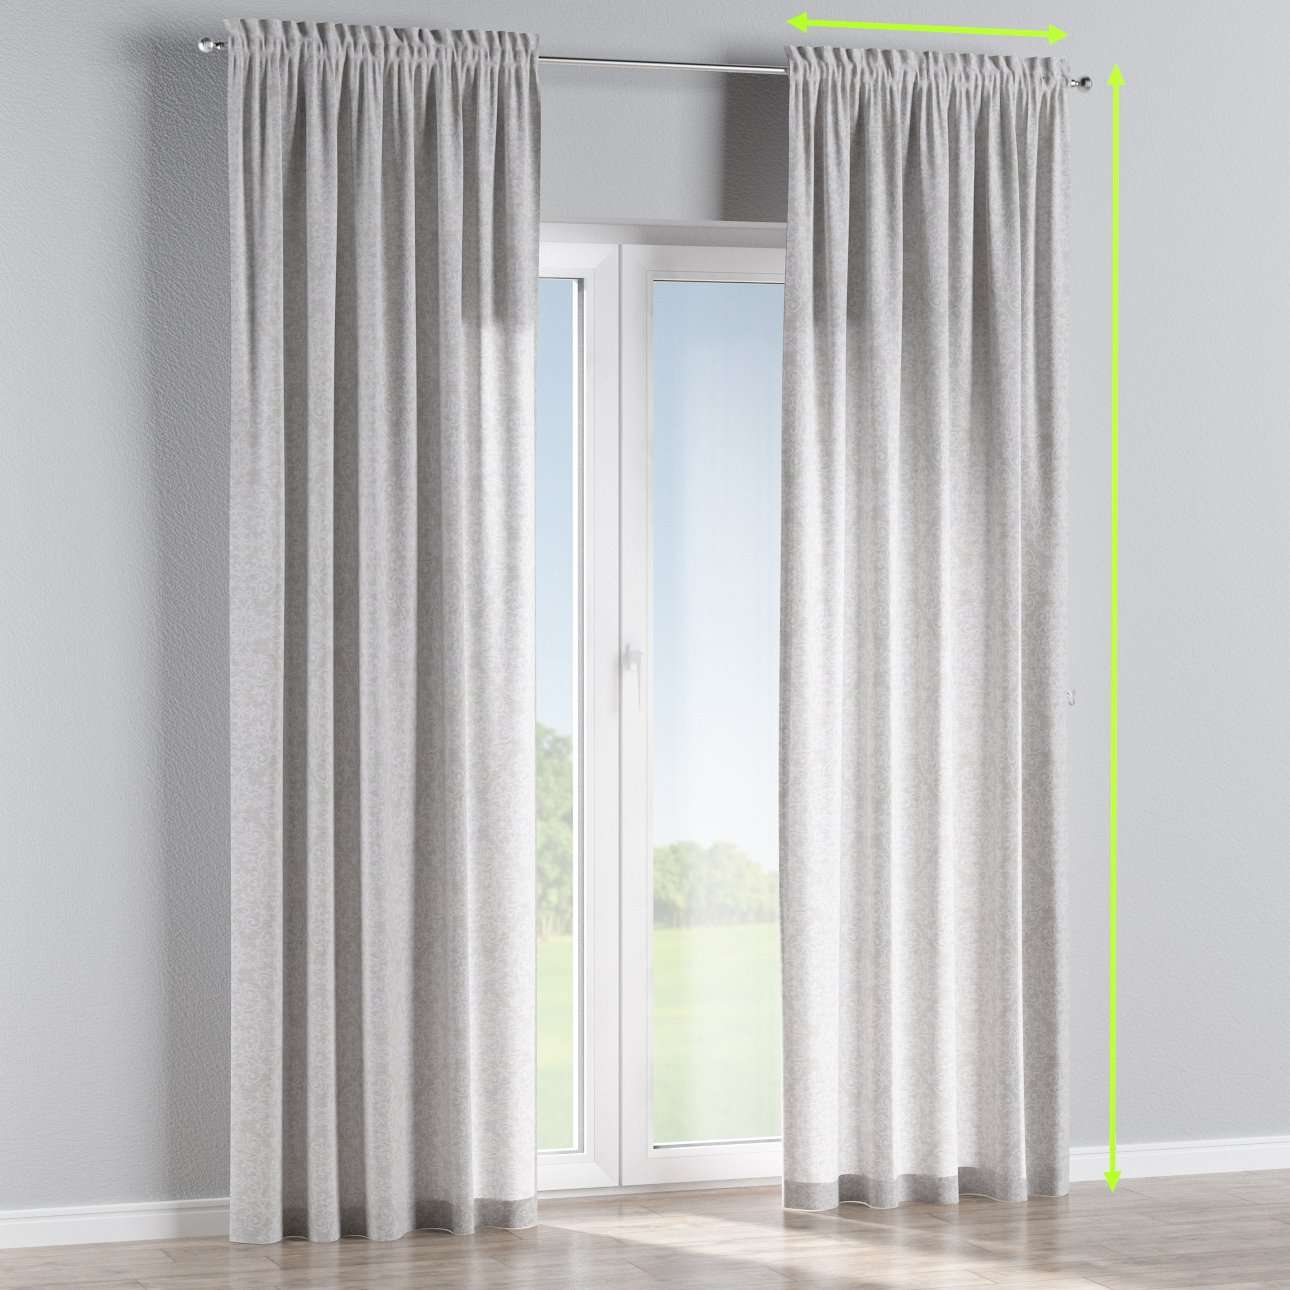 Slot and frill lined curtains in collection Venice, fabric: 140-49